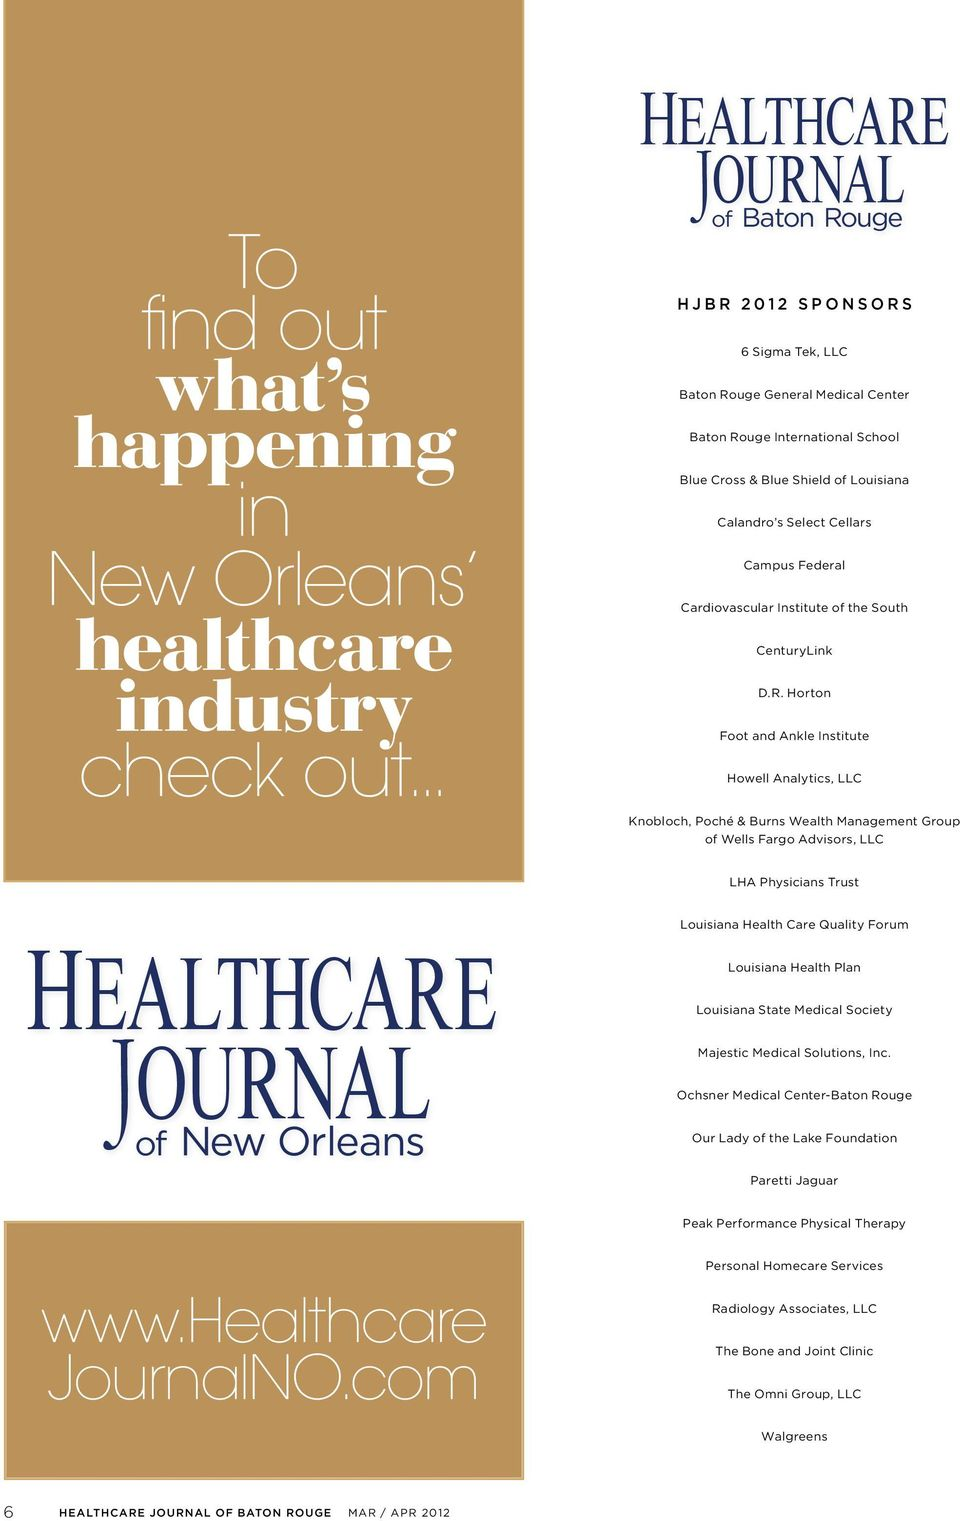 Federal Cardiovascular Institute of the South CenturyLink D.R.